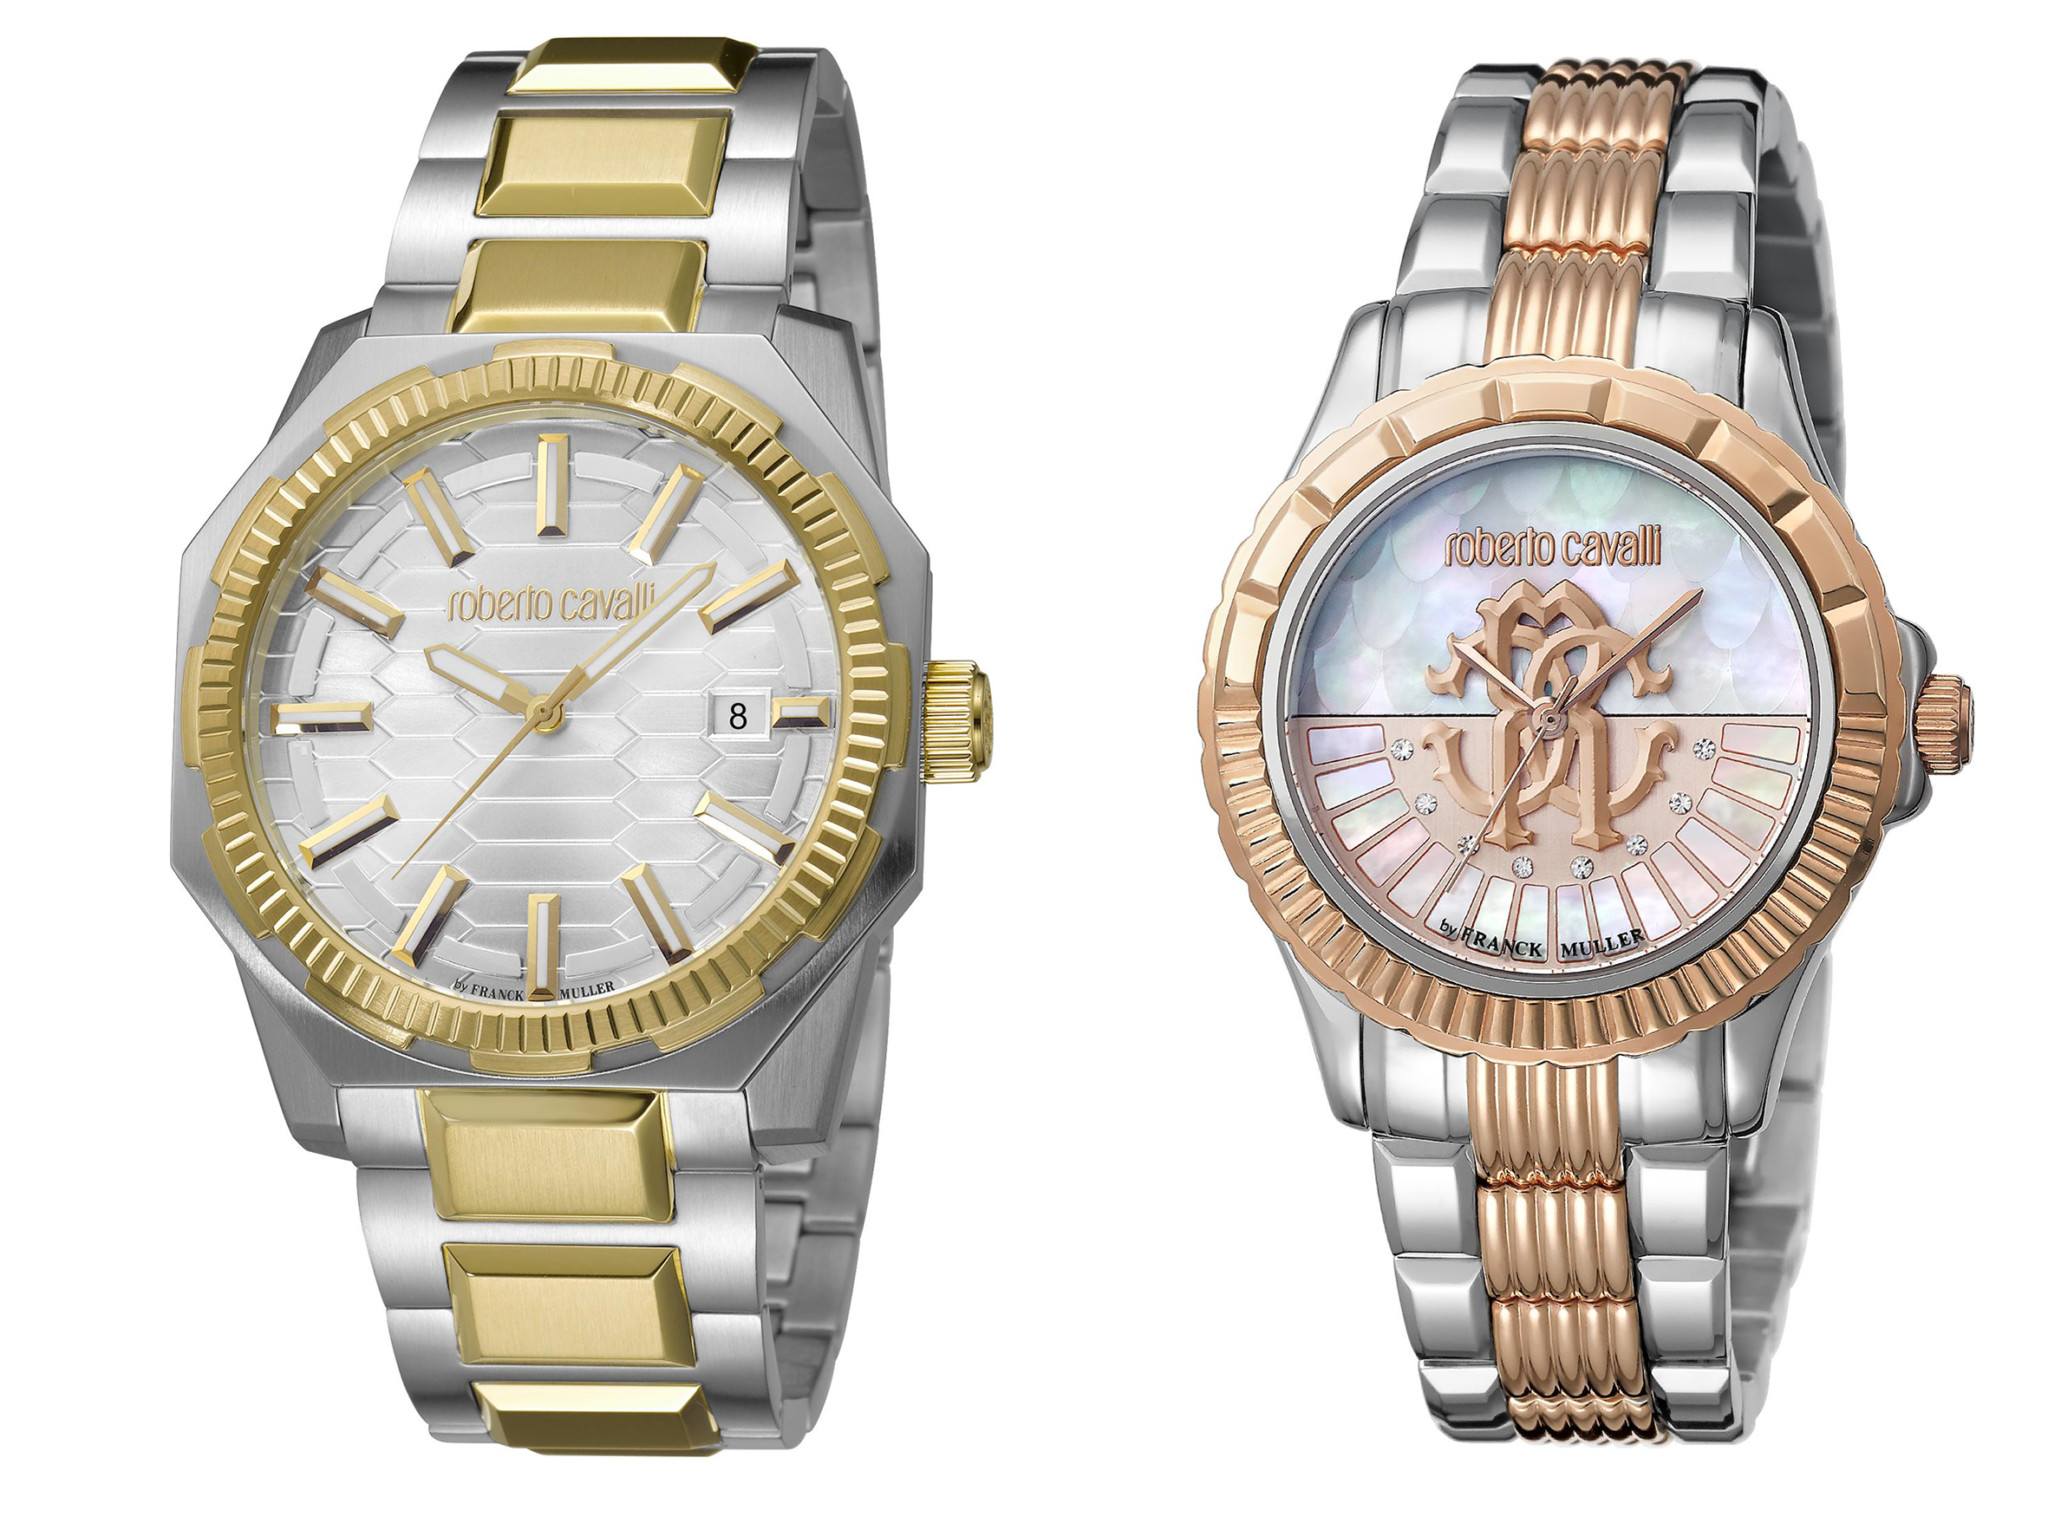 cc454c6040894e Distributor promotes Roberto Cavalli and Just Cavalli watches at  International Jewellery London